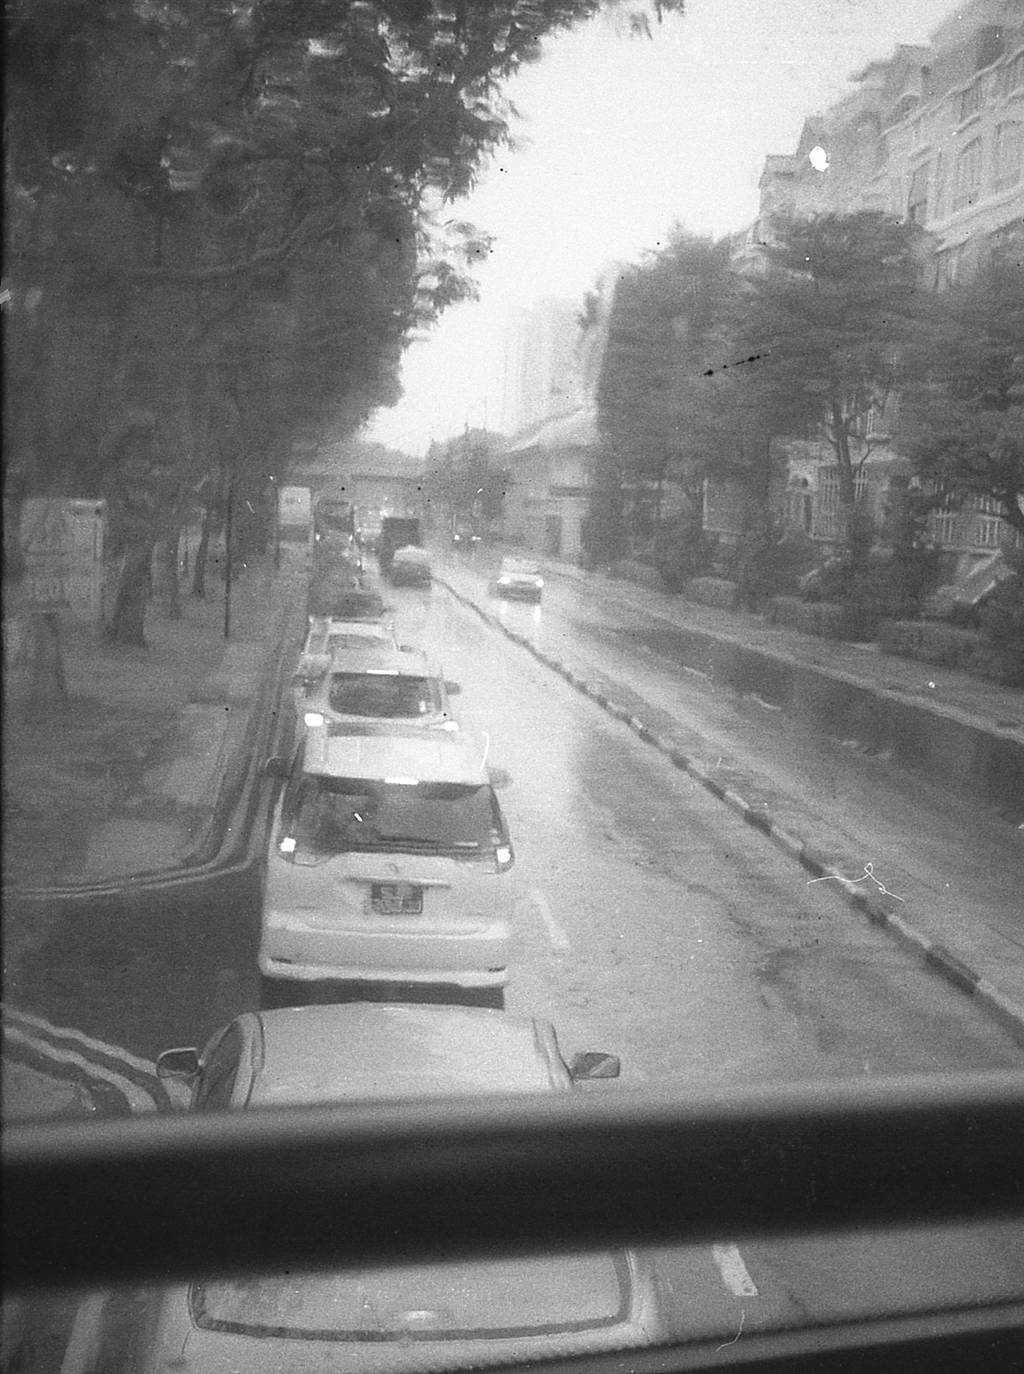 My Analogue Days: Going to Work on a Rainy Day